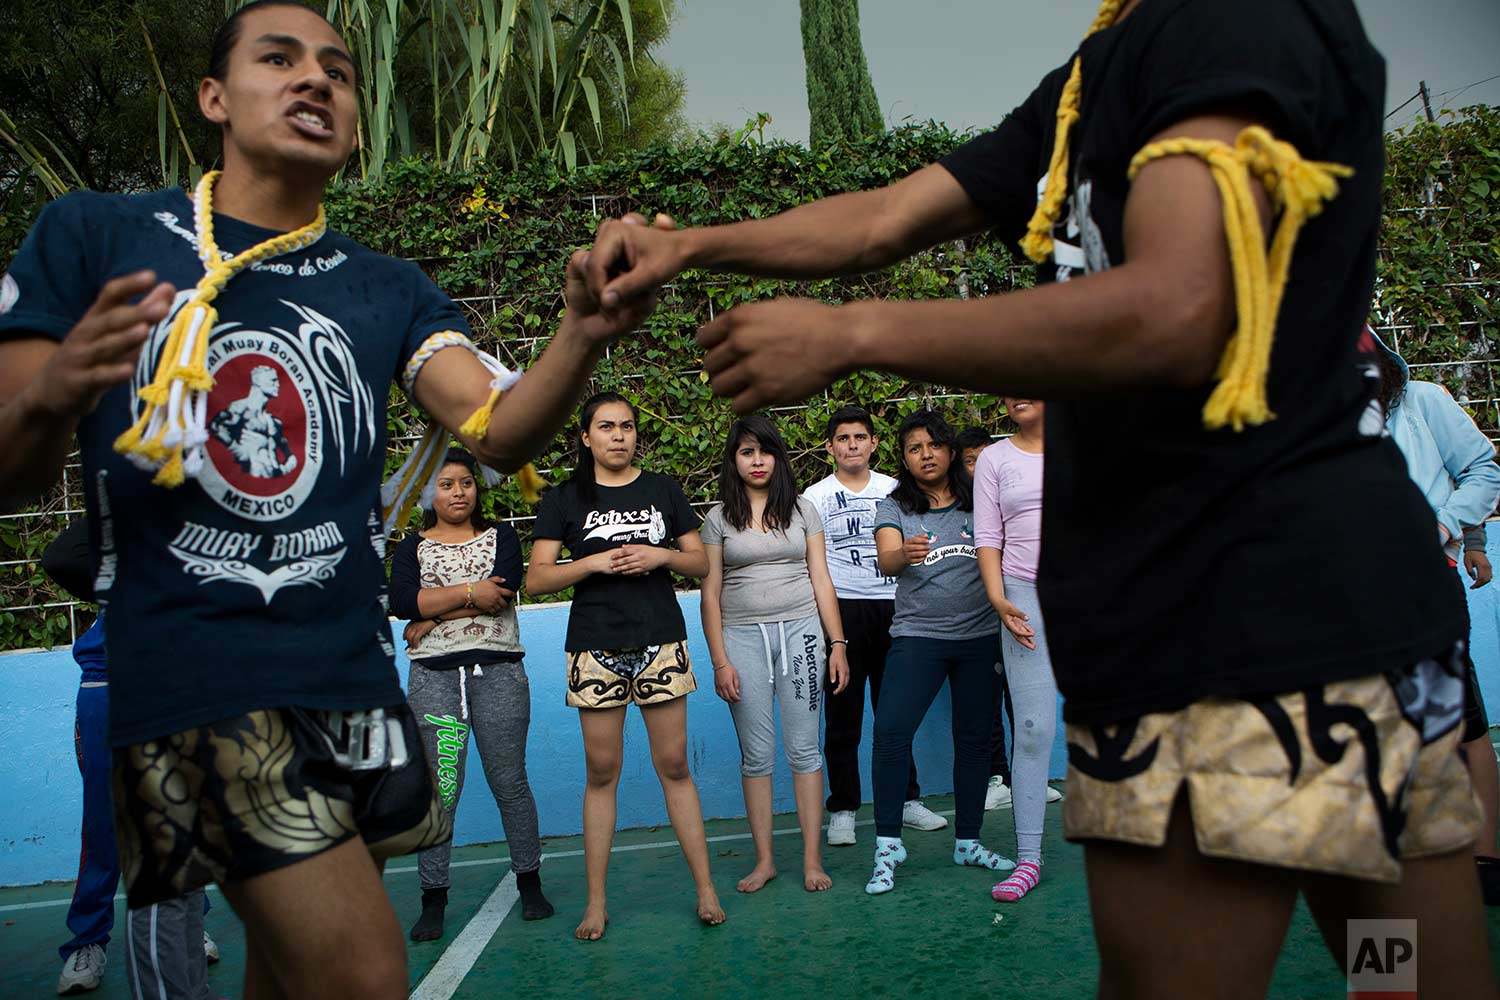 In this Aug. 25, 2017 photo, Muay Thai practitioners demonstrate self-defense moves to mostly female students at a nursing school in Nezahualcoyotl, Mexico state. (AP Photo/Rebecca Blackwell)